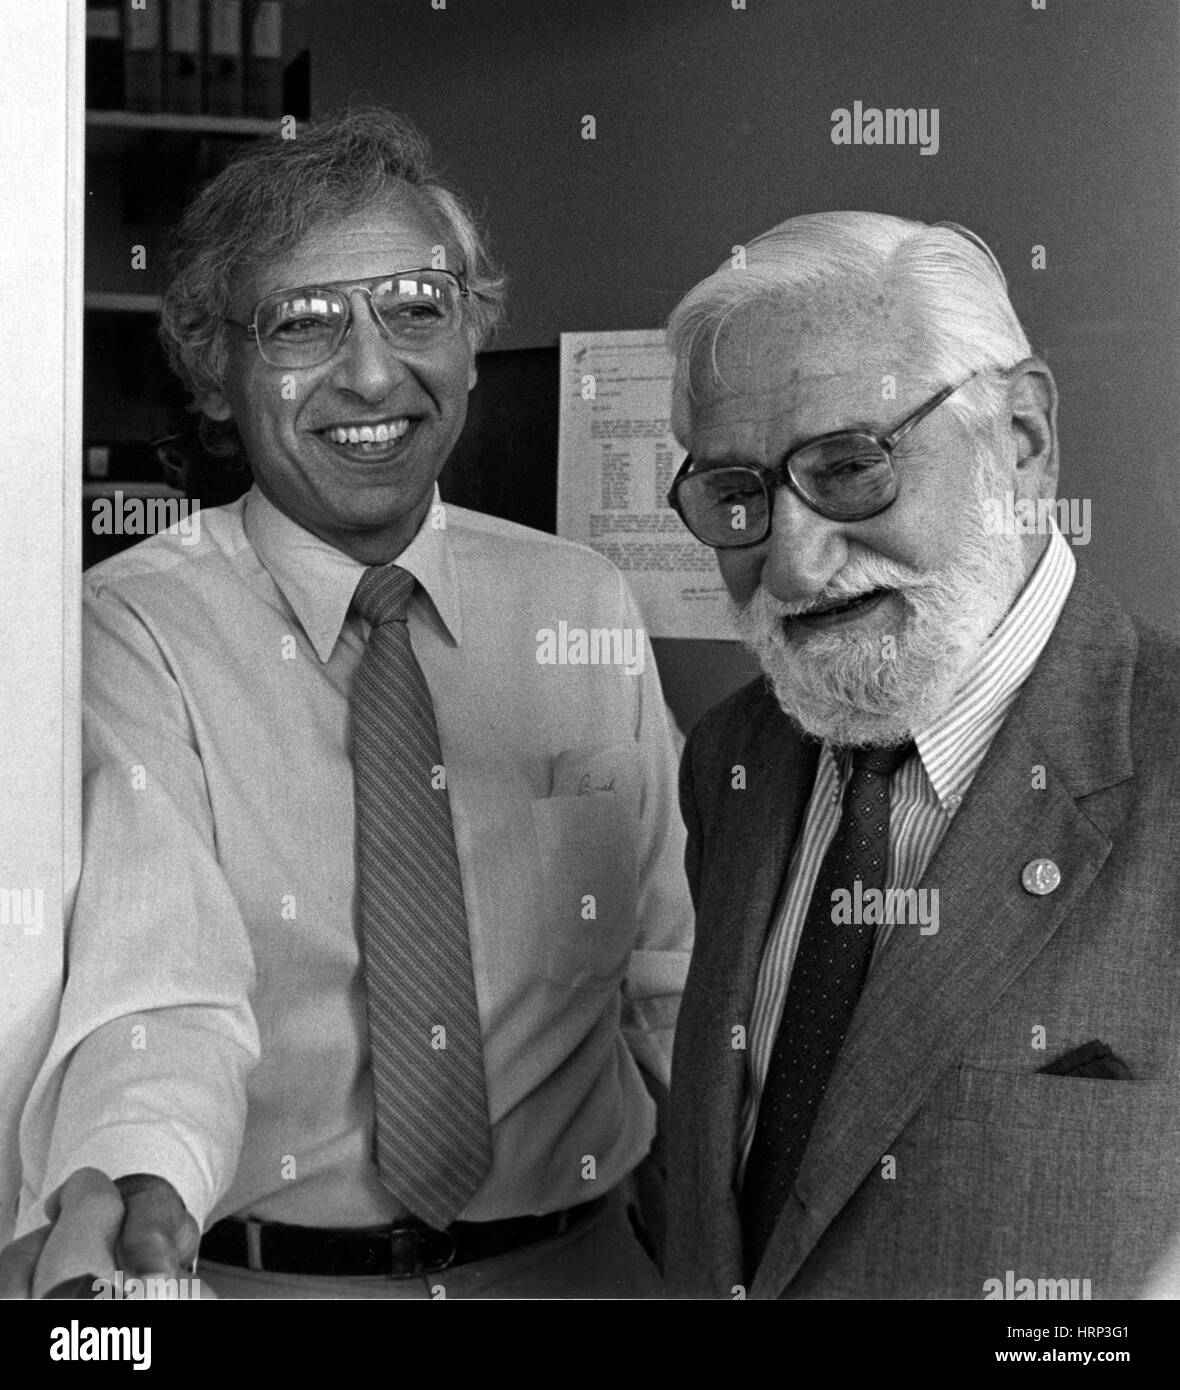 Robert Gallo and Albert Sabin, 1985 - Stock Image